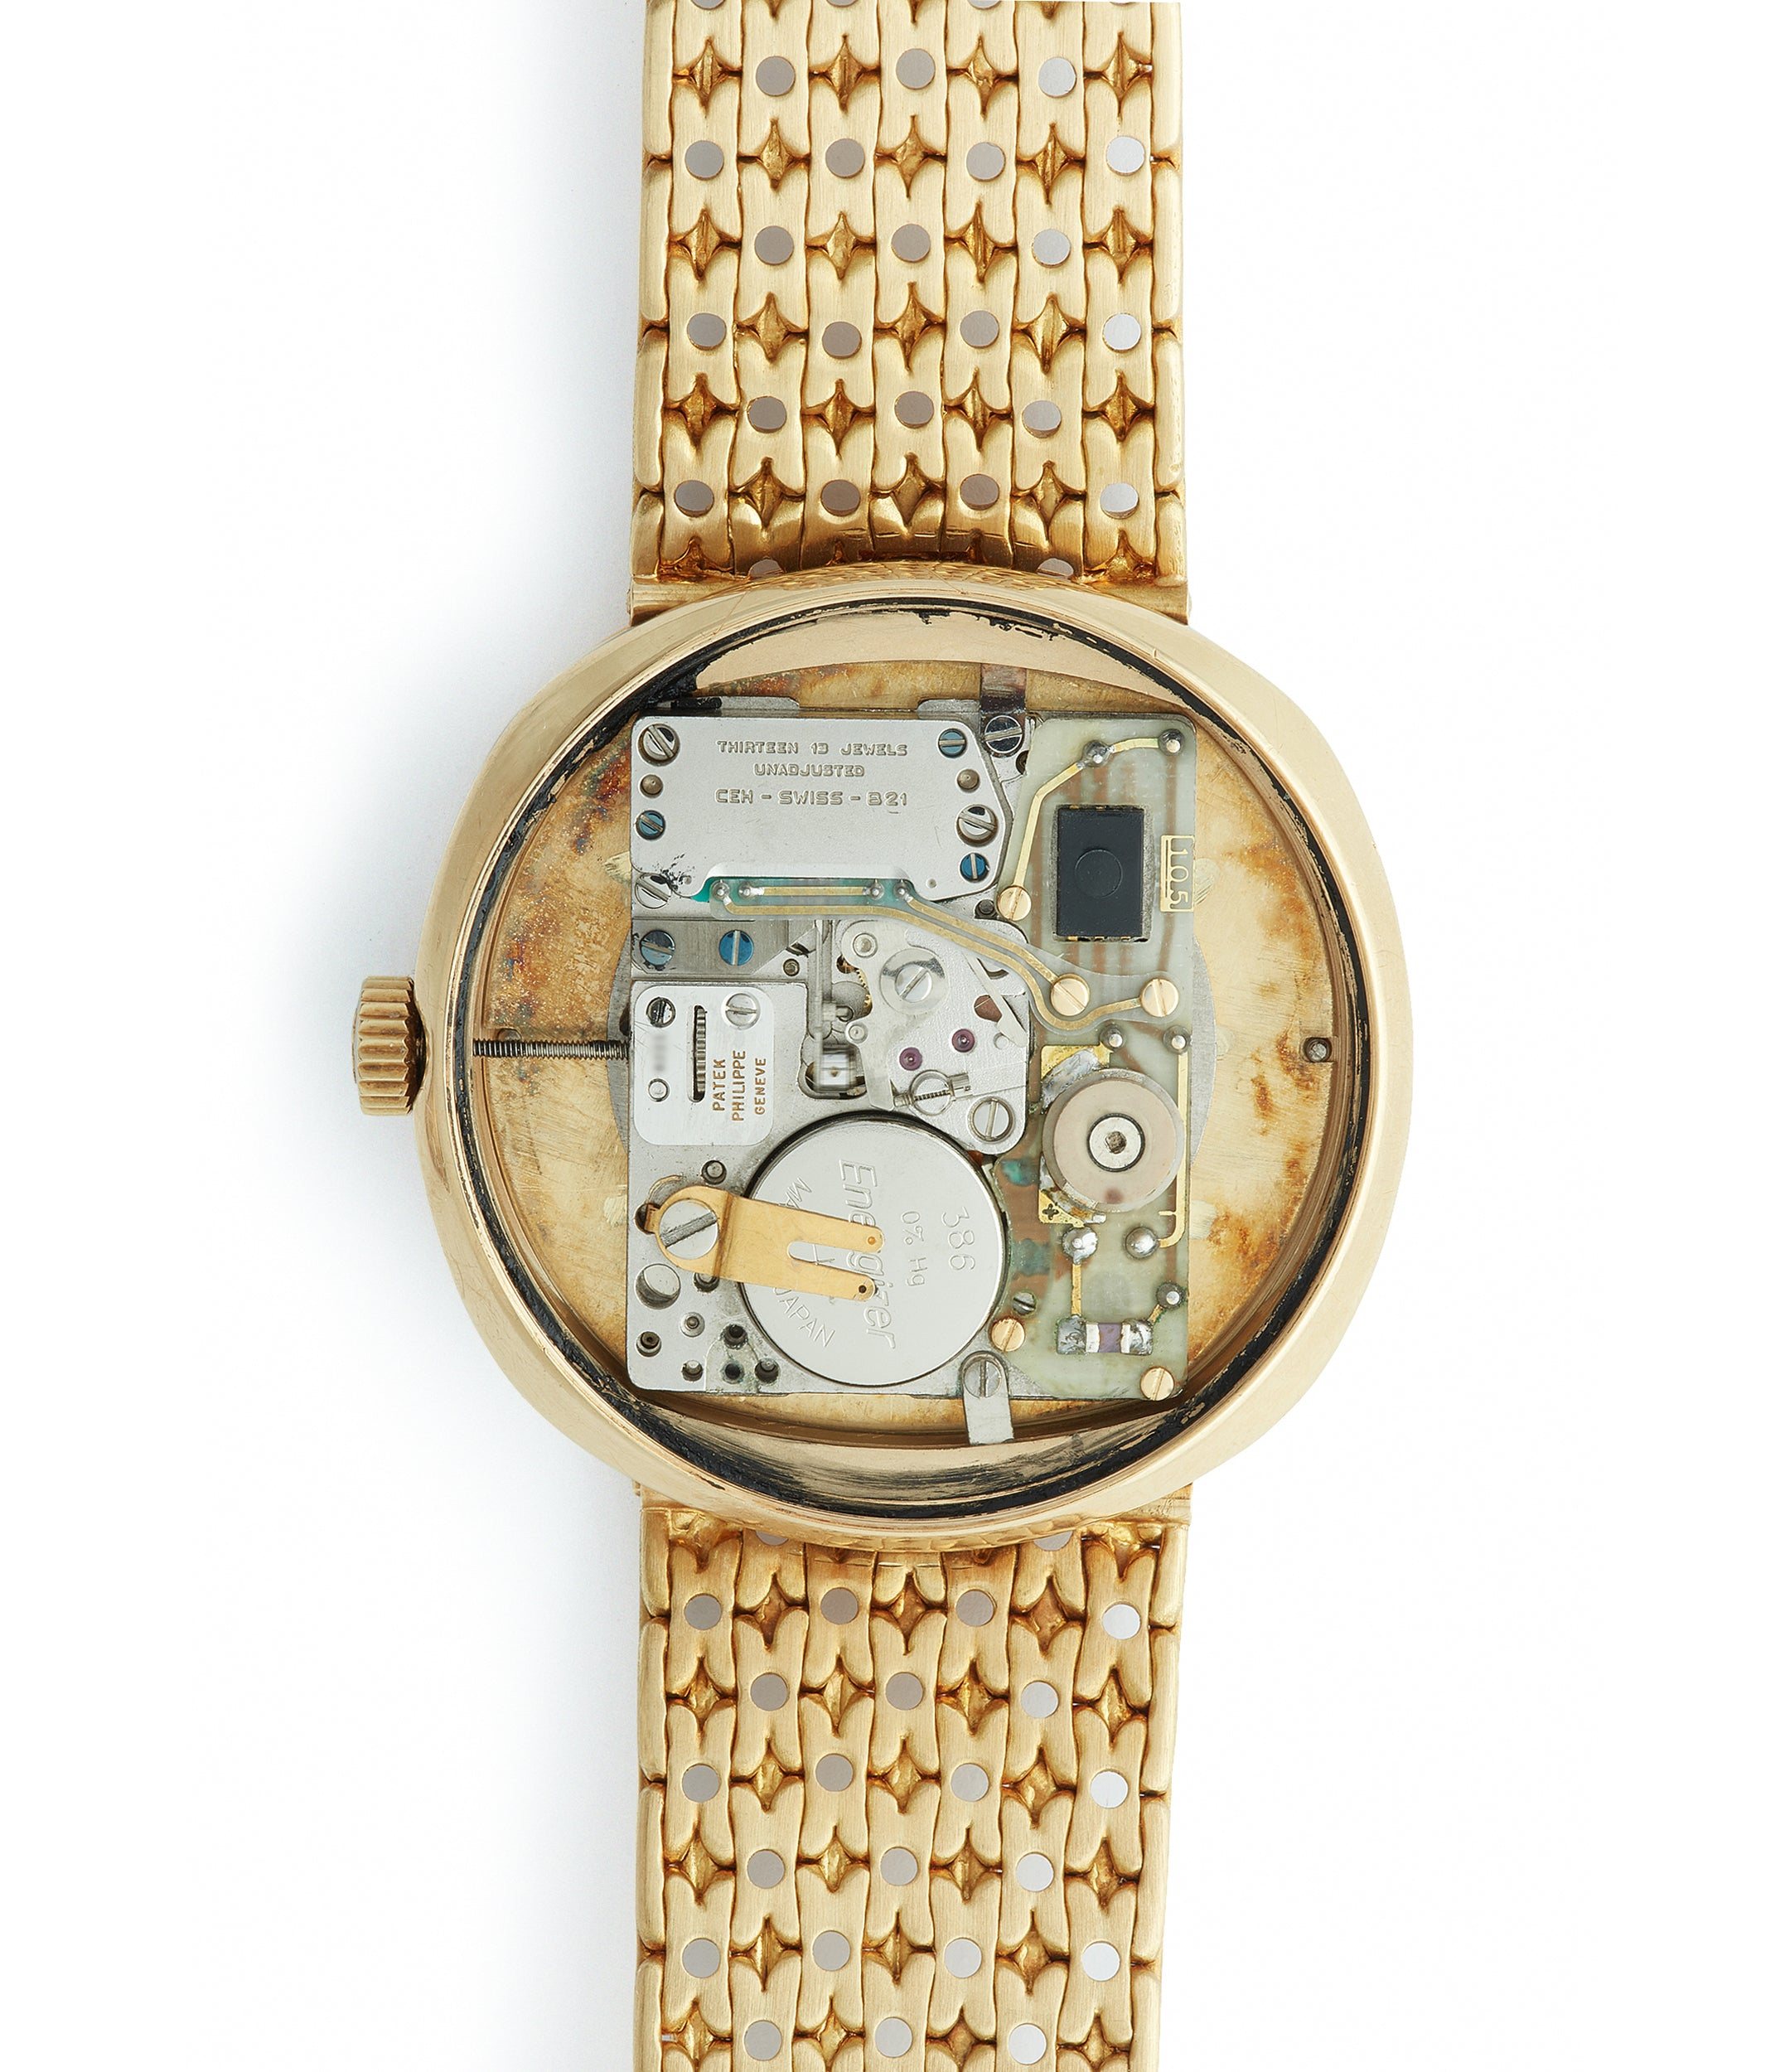 Beta 21 quartz Patek Philippe 3597 yellow gold 1970s dress watch for sale online A Collected Man London UK specialist of rare watches